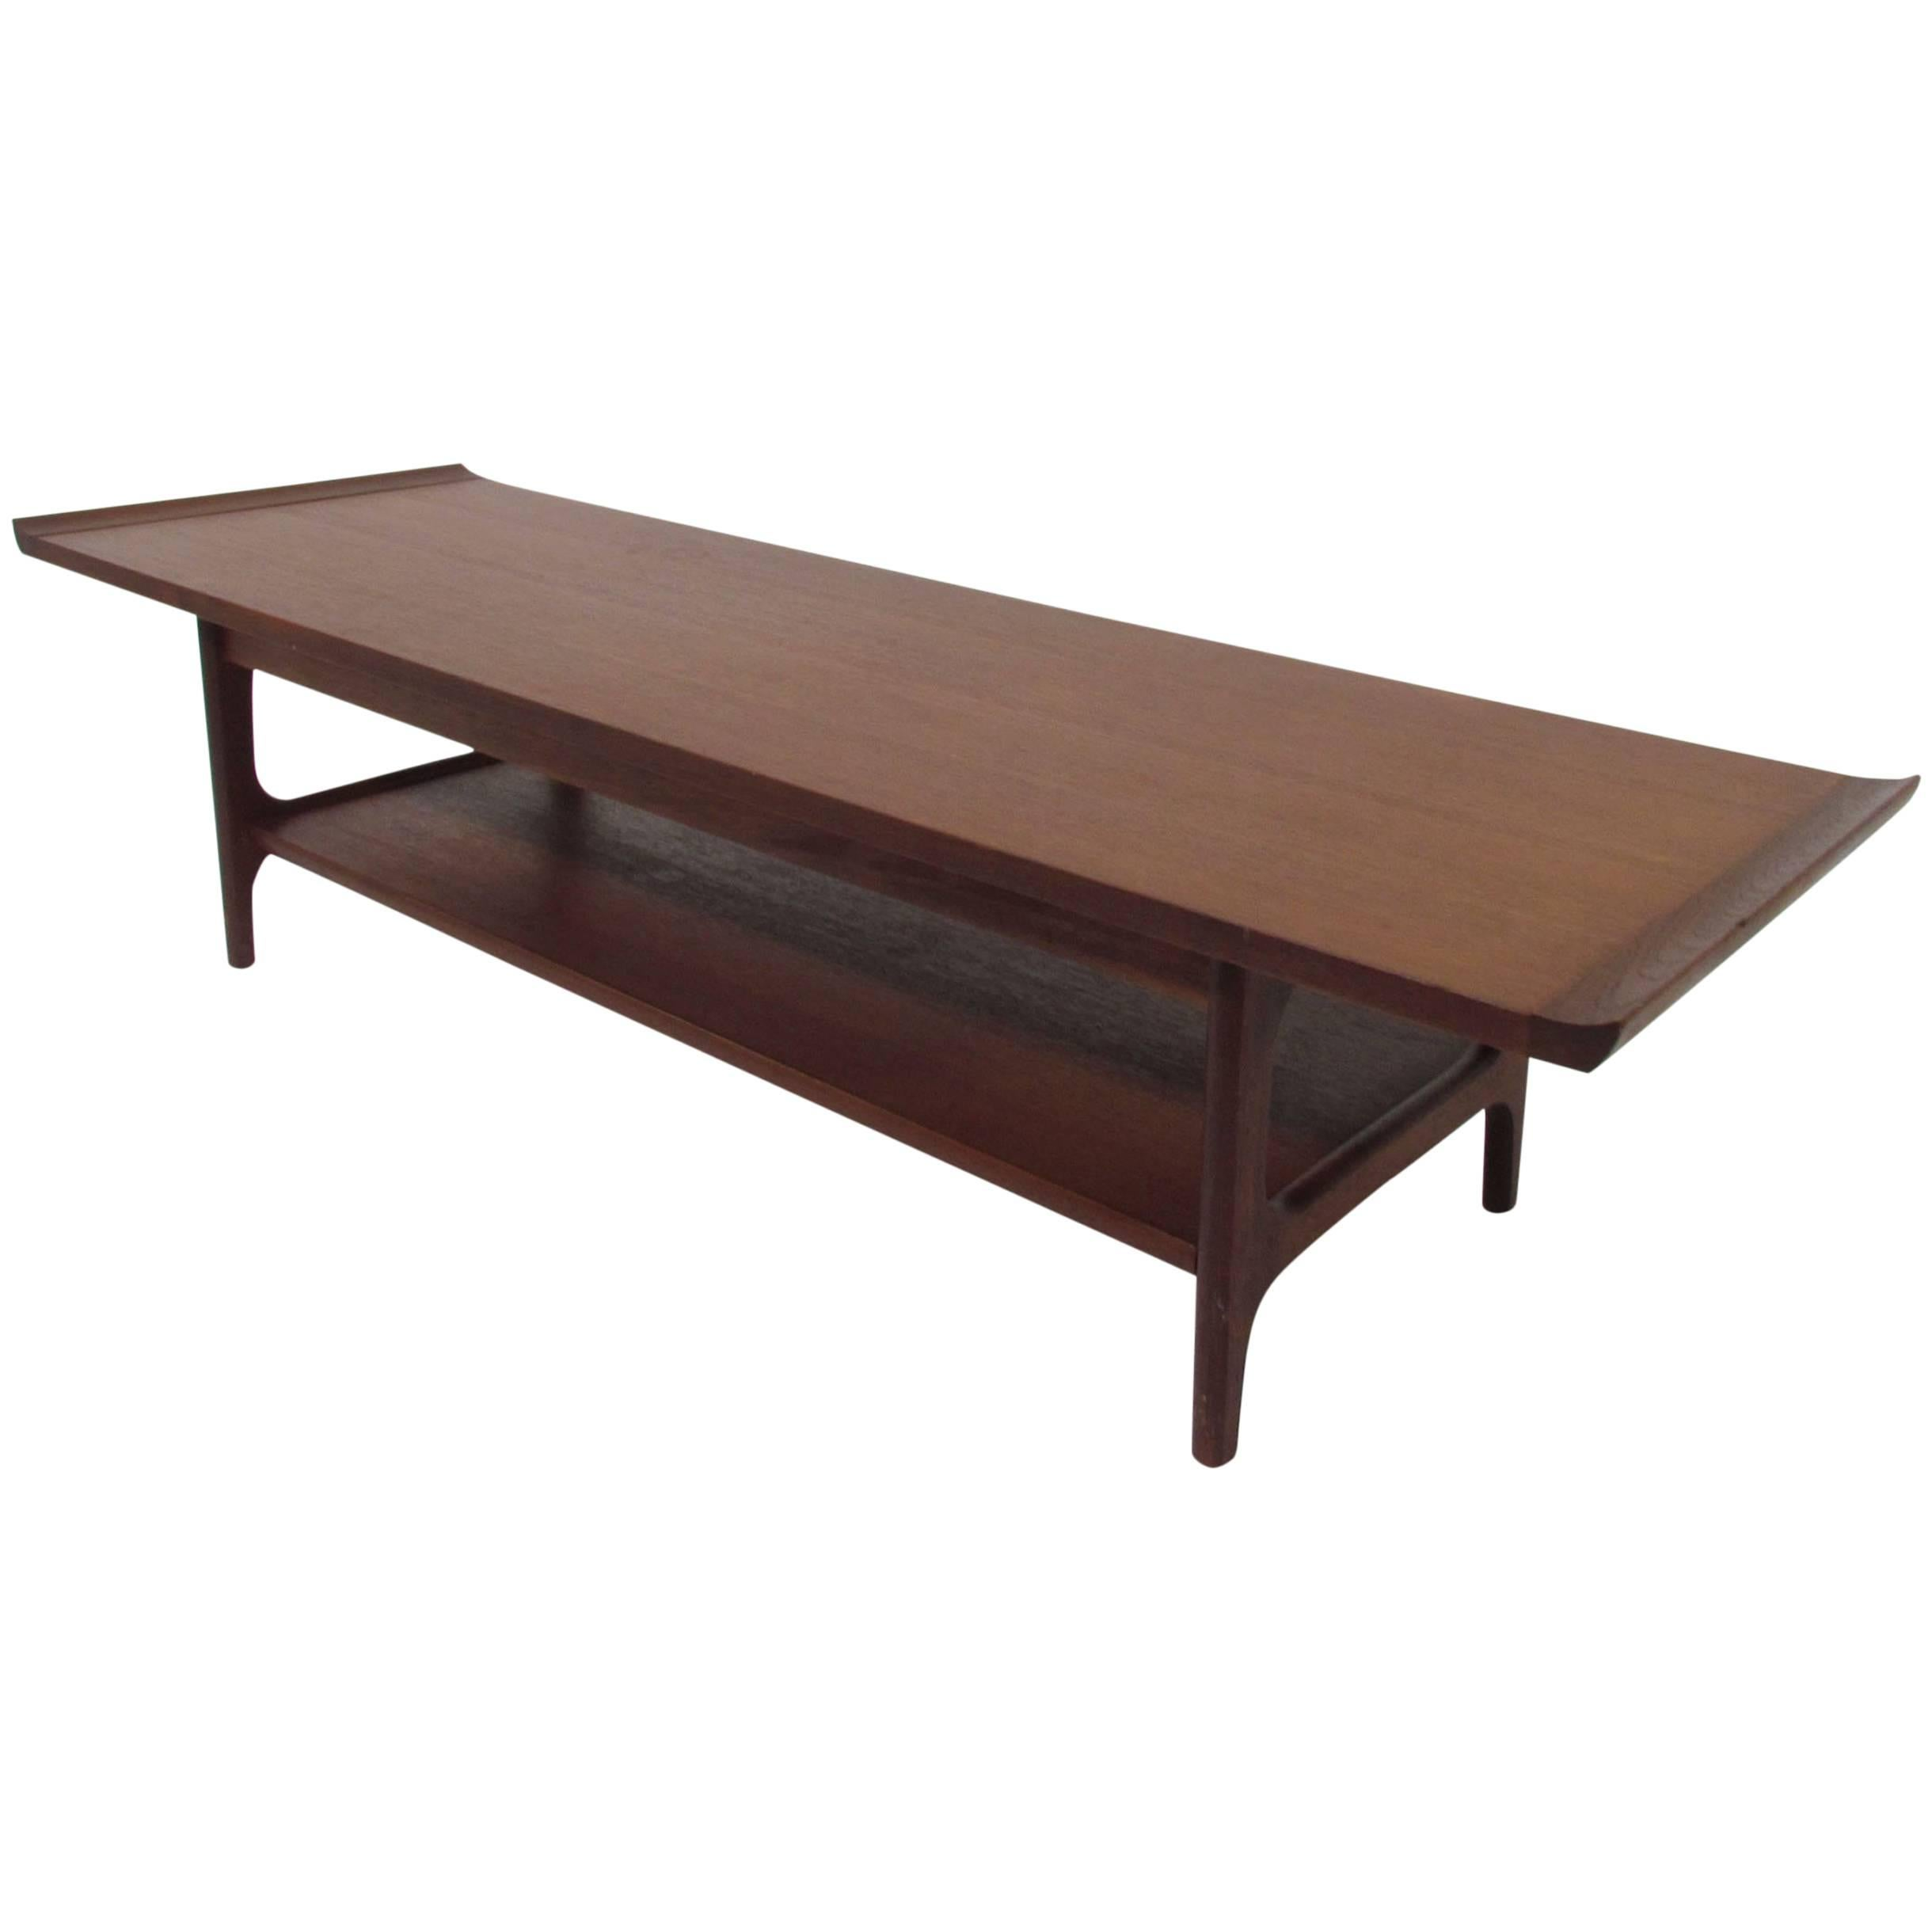 Superbe Japanese Teak Coffee Table In The Danish Modern Style, Circa 1960s For Sale